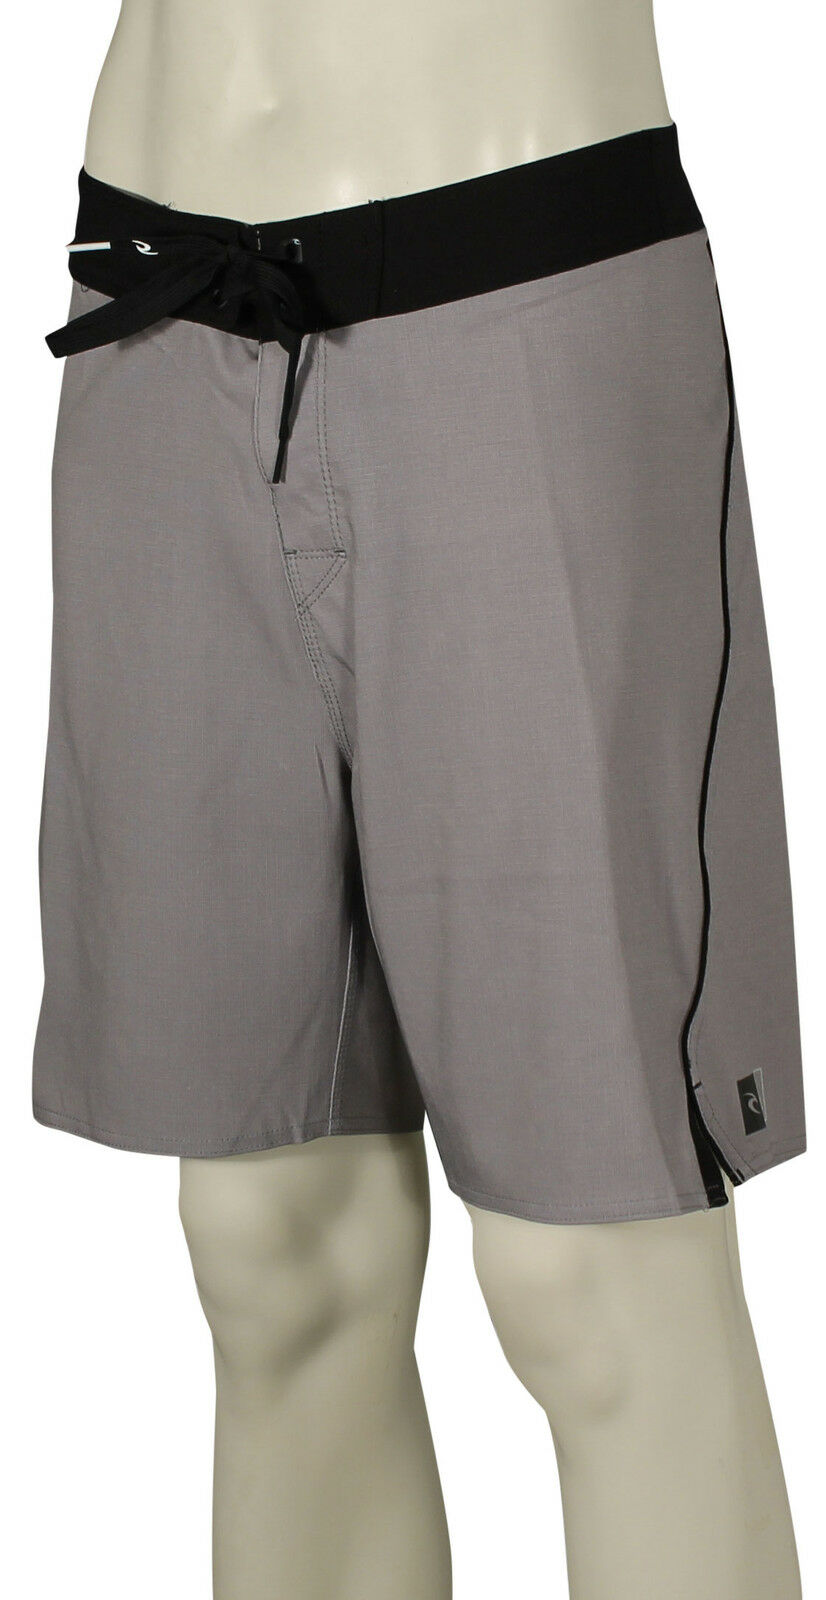 Rip Curl Mirage Aggrofill Boardshorts - Grey - New